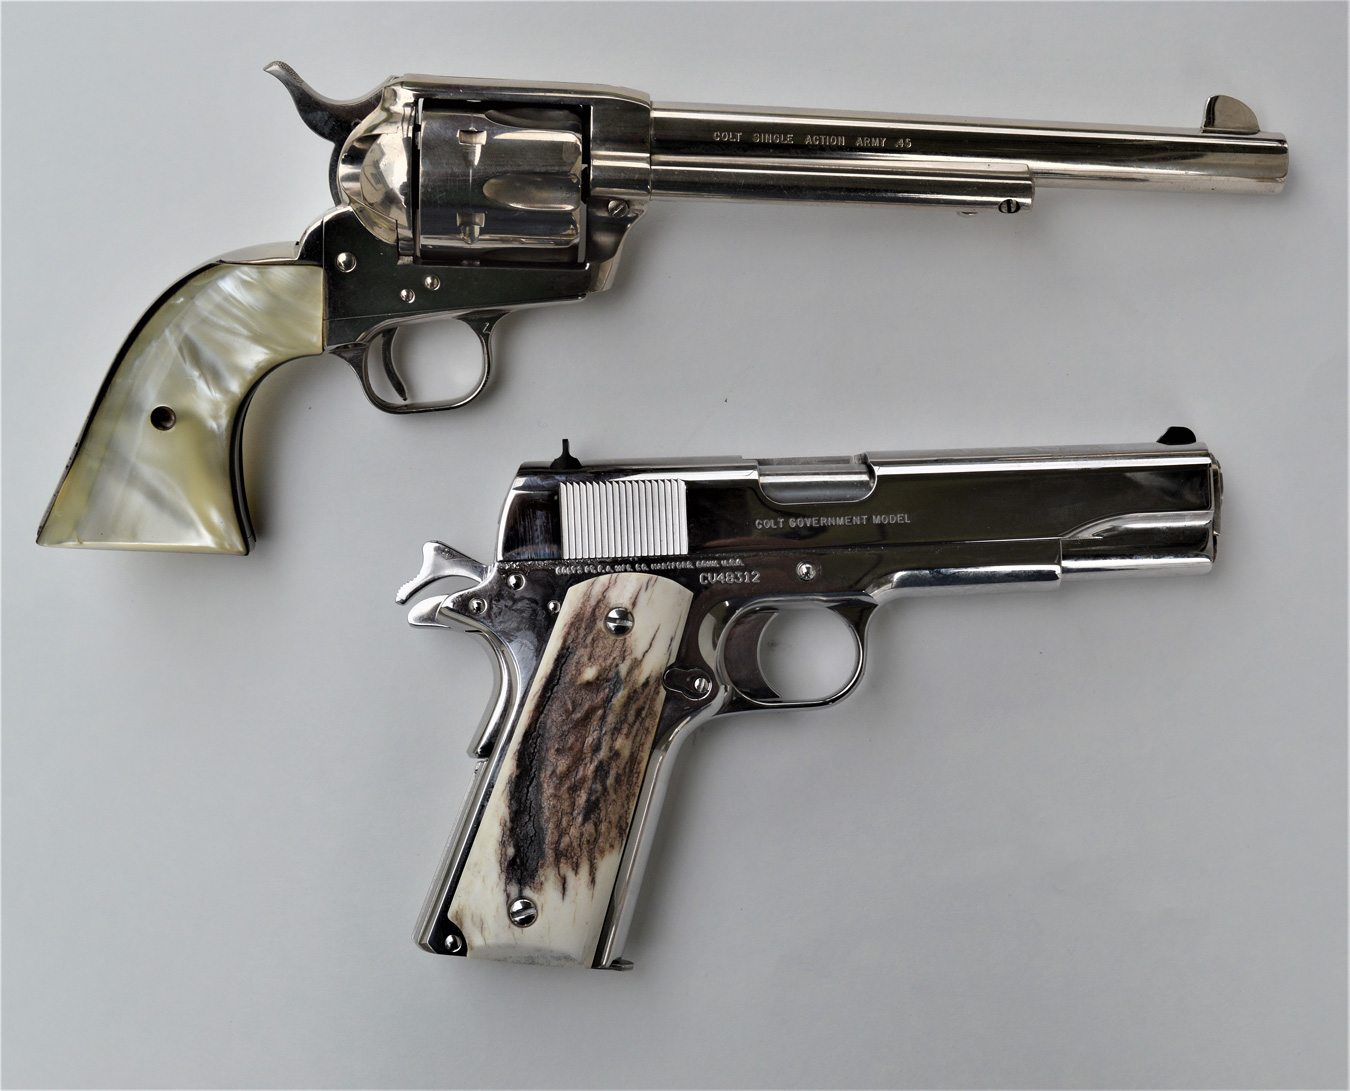 Colt Single Action Army revolver and 1911 pistol with ivory grips